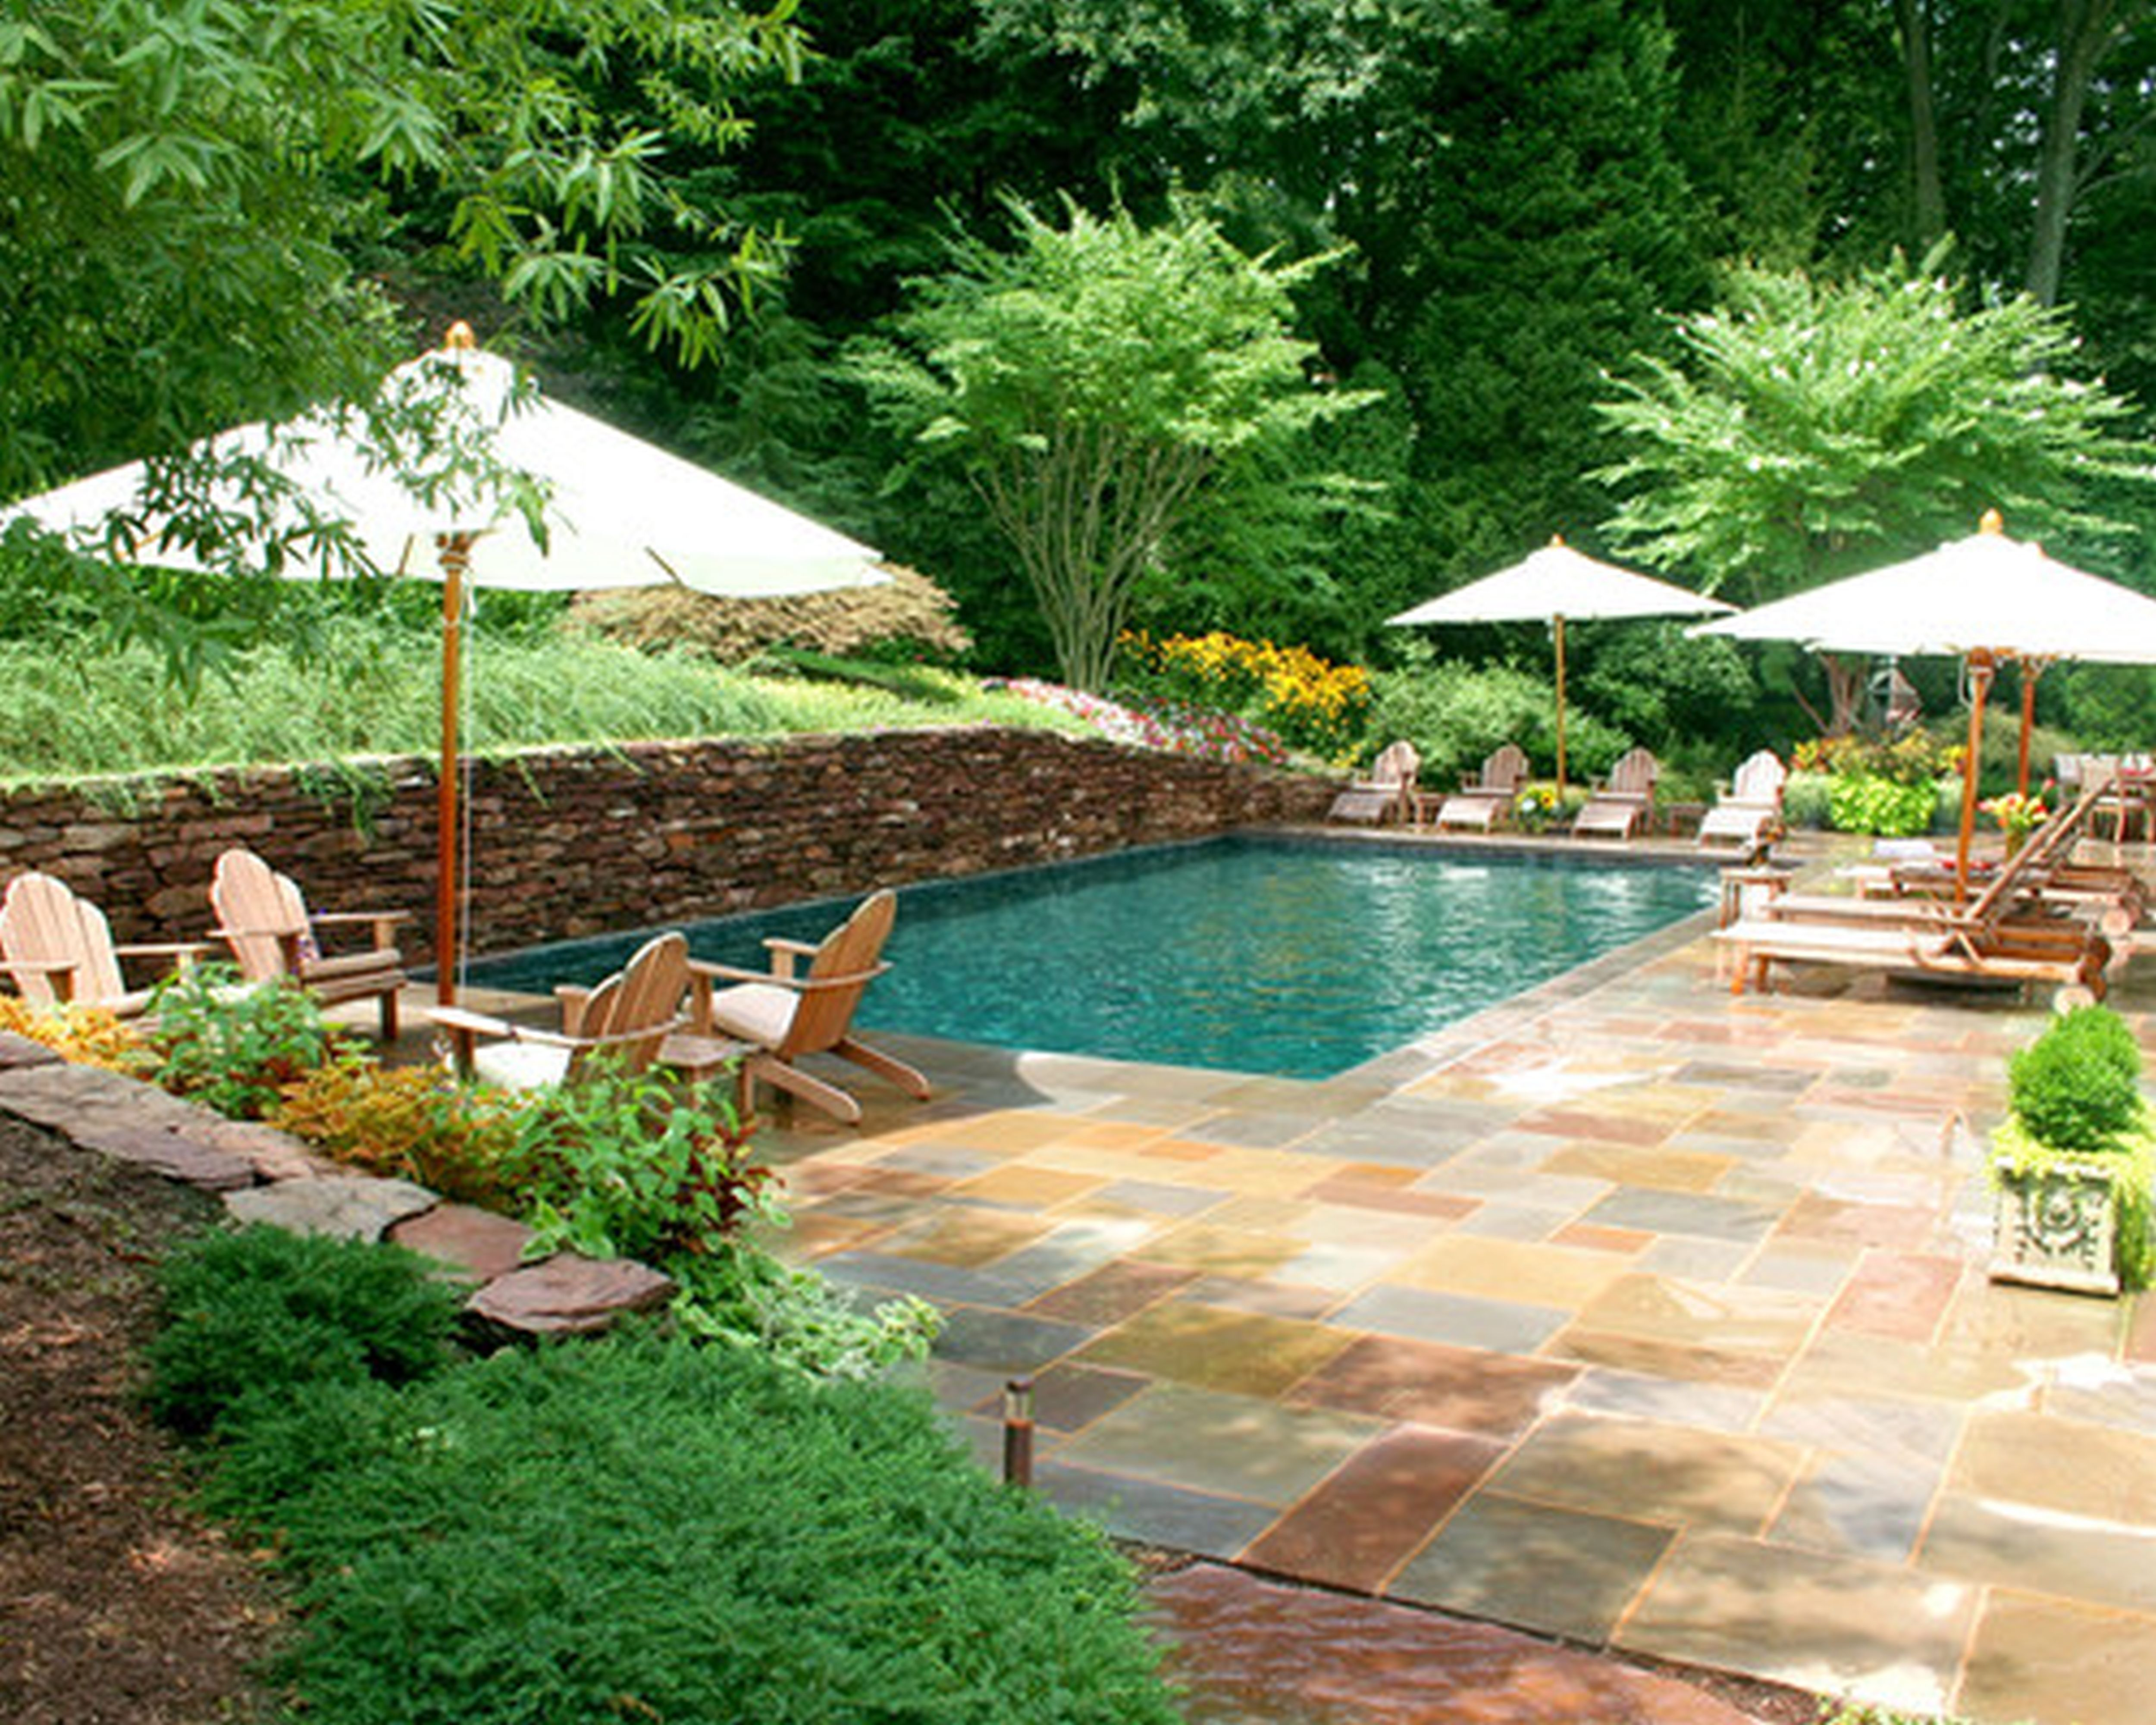 Designing Your Backyard Swimming Pool Part I Of II